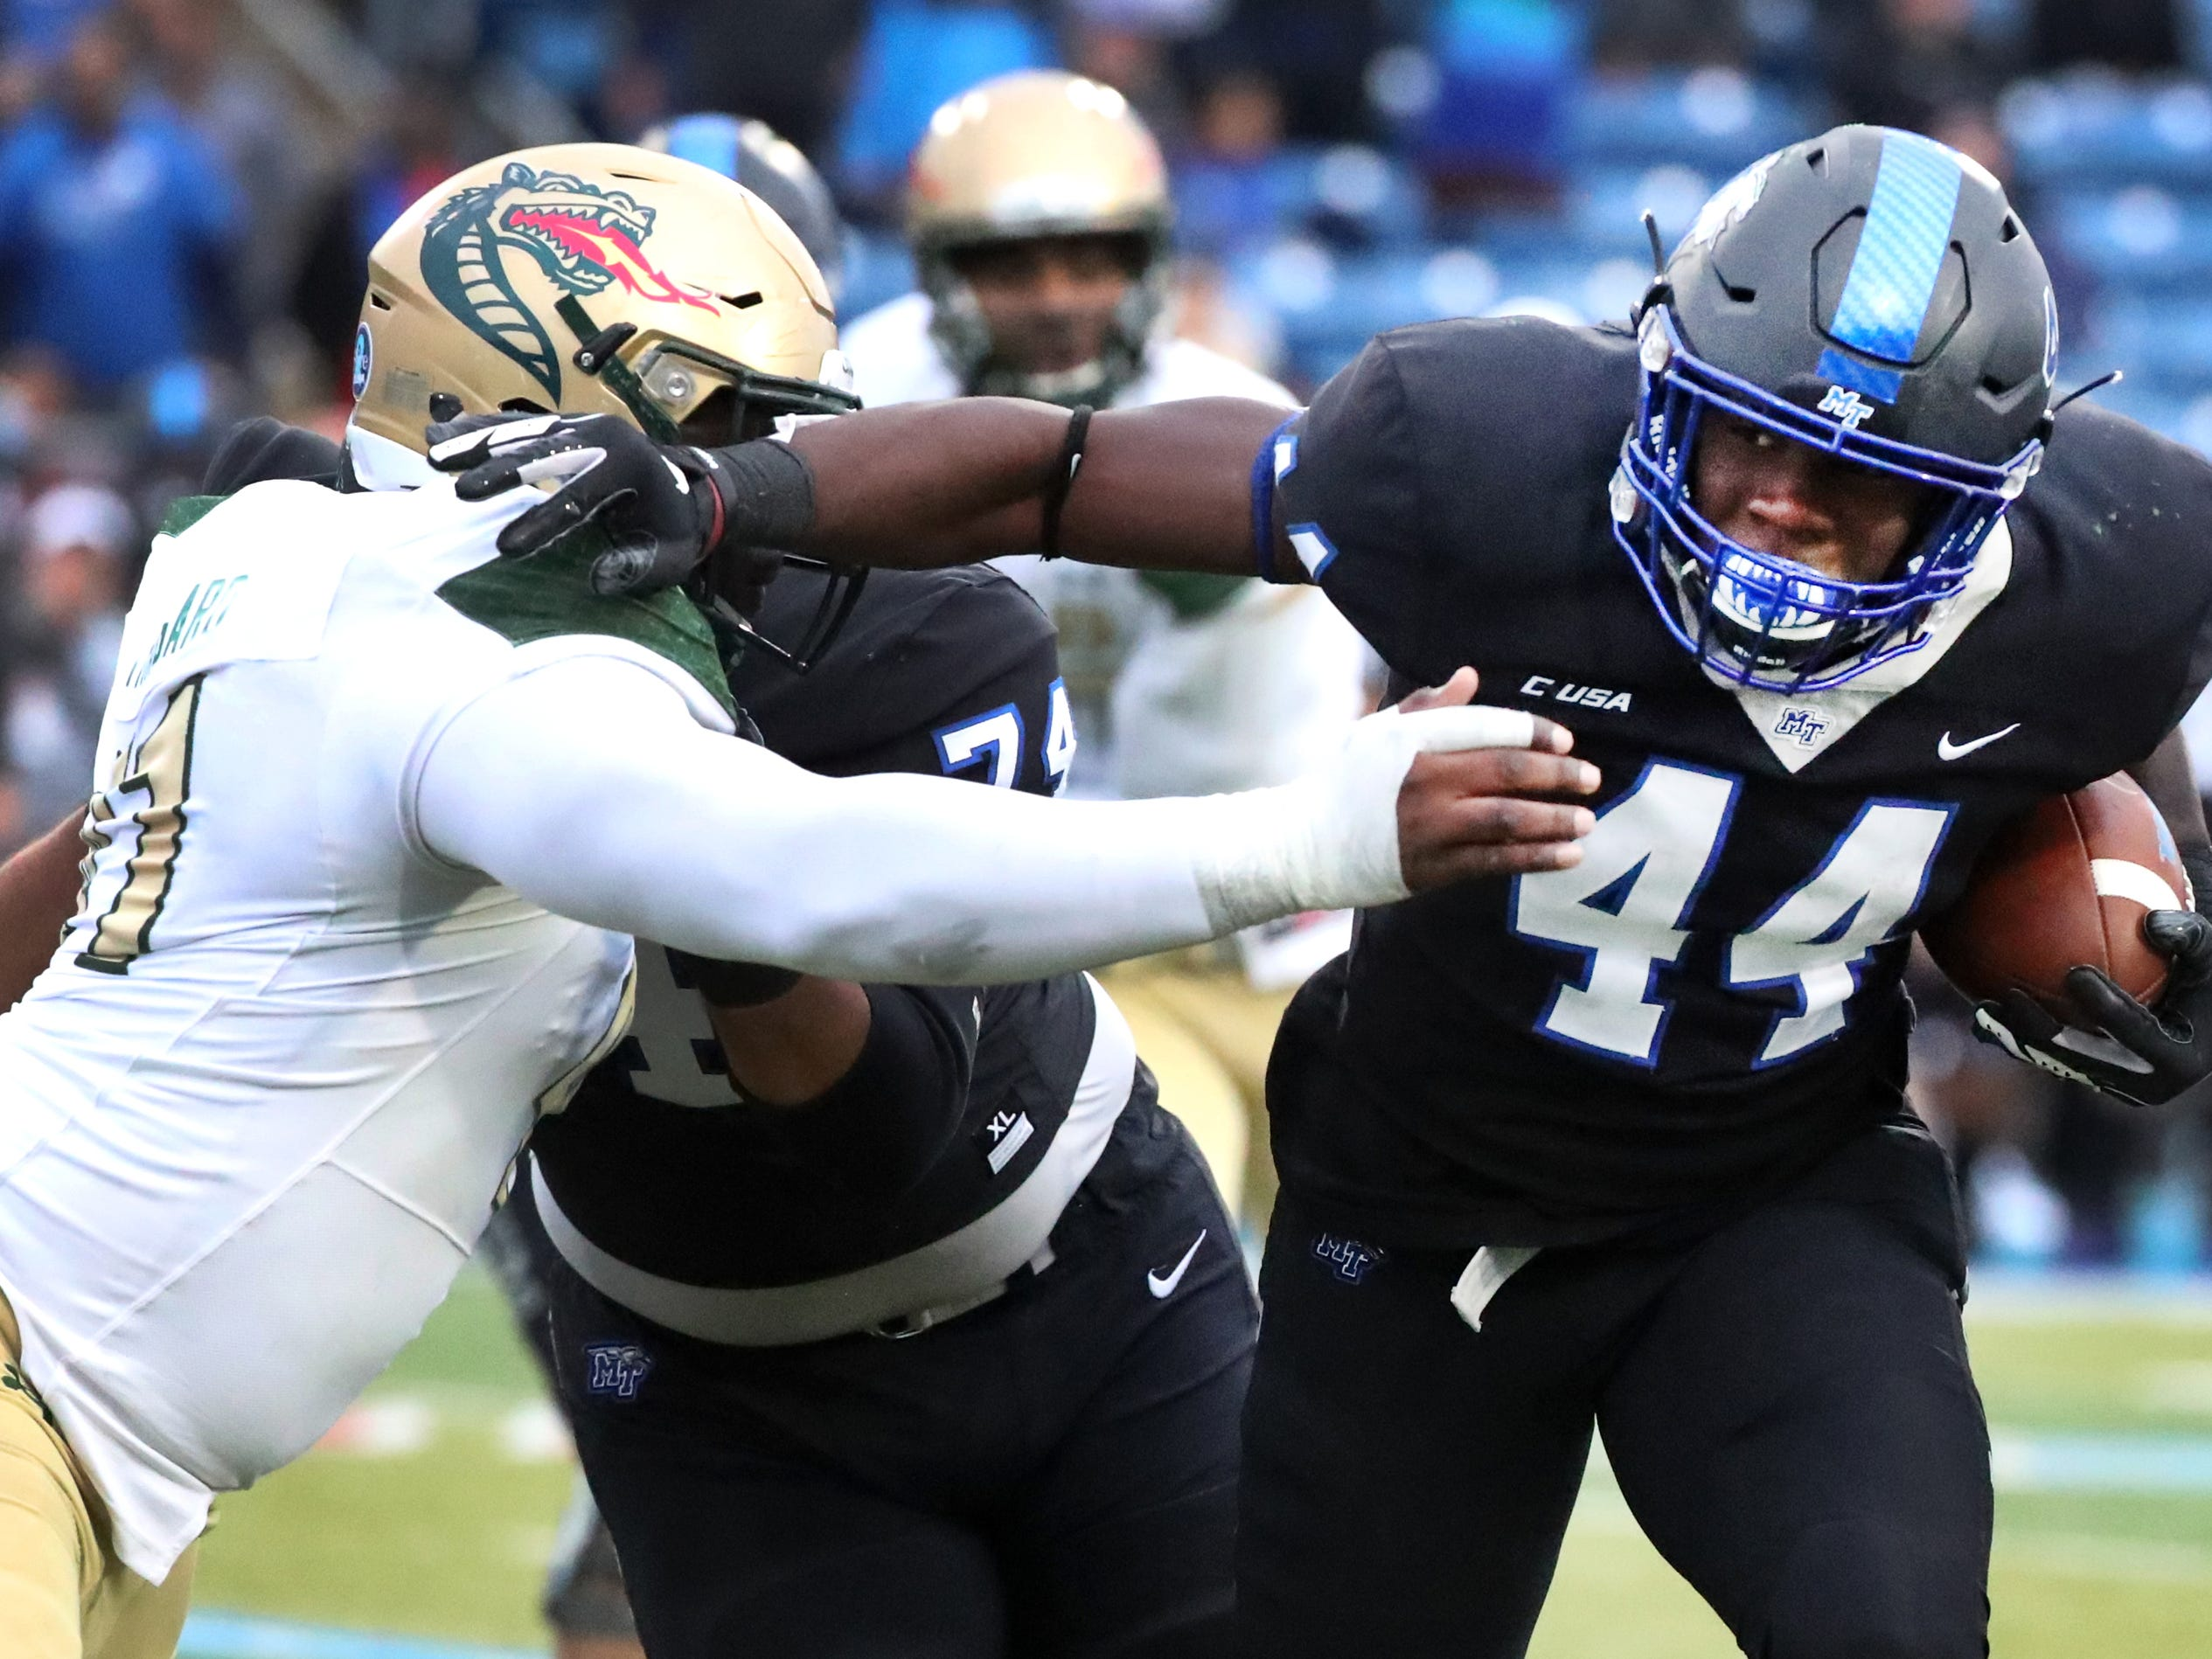 MTSU's running back Chaton Mobley (44) runs the ball as UAB's defensive lineman Quindarius Thagard (41) moves in for a tackle that Mobley shakes off during the Conference USA Championship at MTSU on Saturday, Dec. 1, 2018.